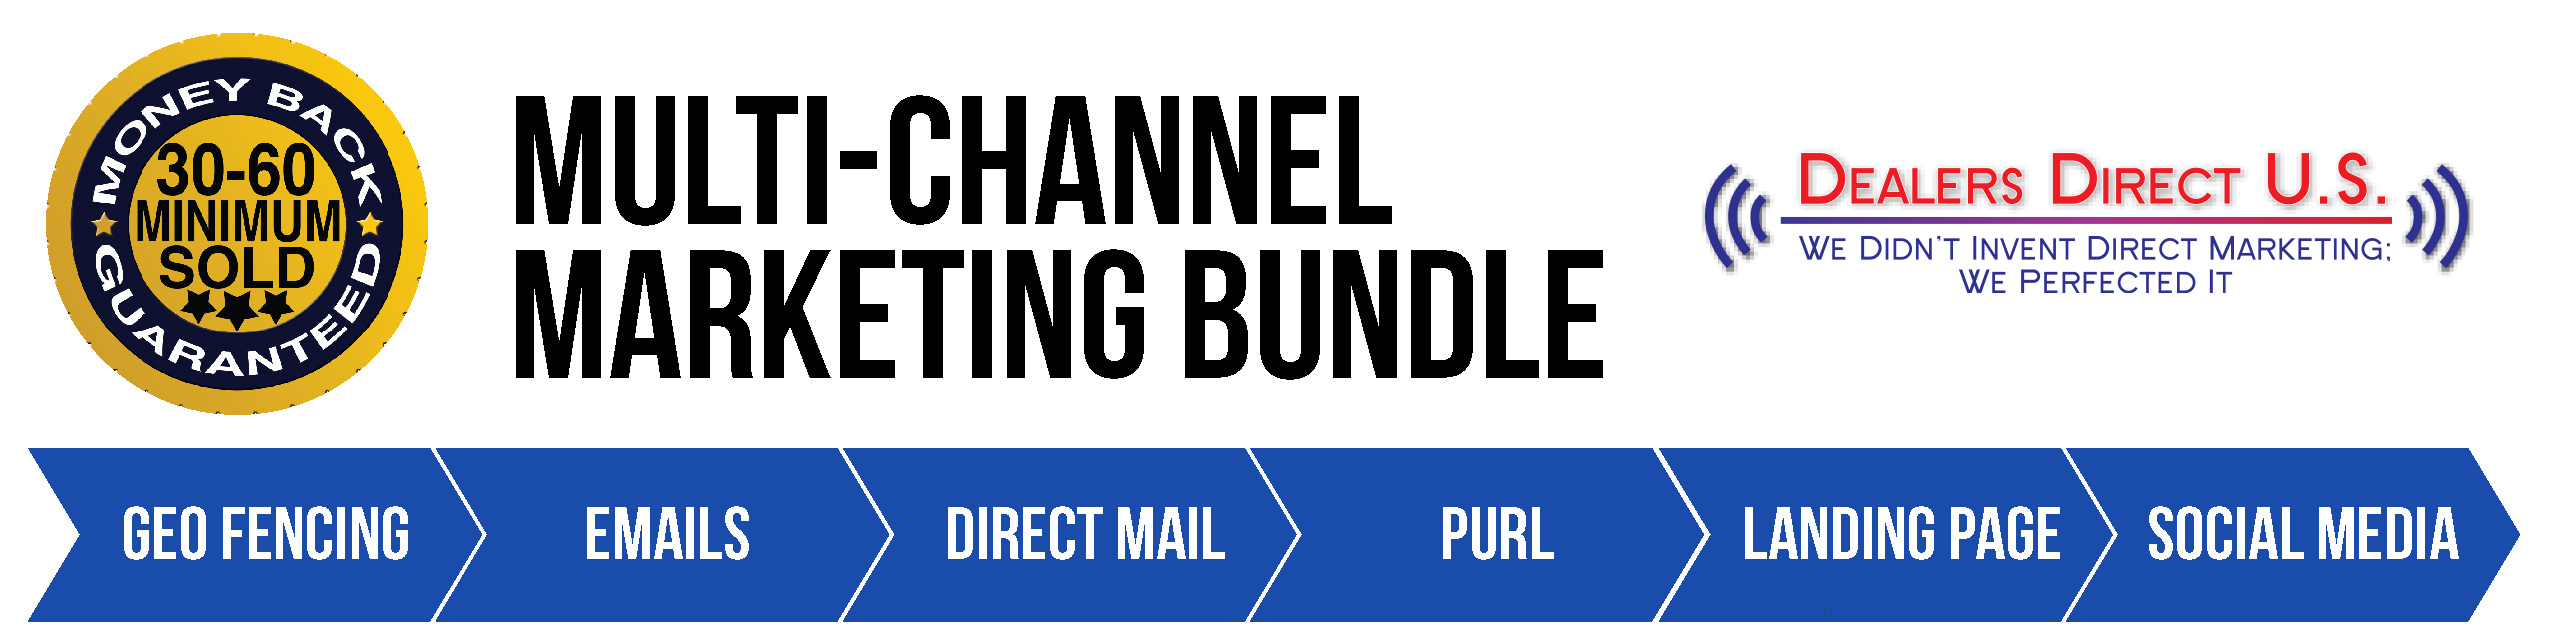 Multi-Channel Marketing Bundle. 30-60 minimum sold guaranteeed. Geo fencing emails direct mail PURL landing page social media